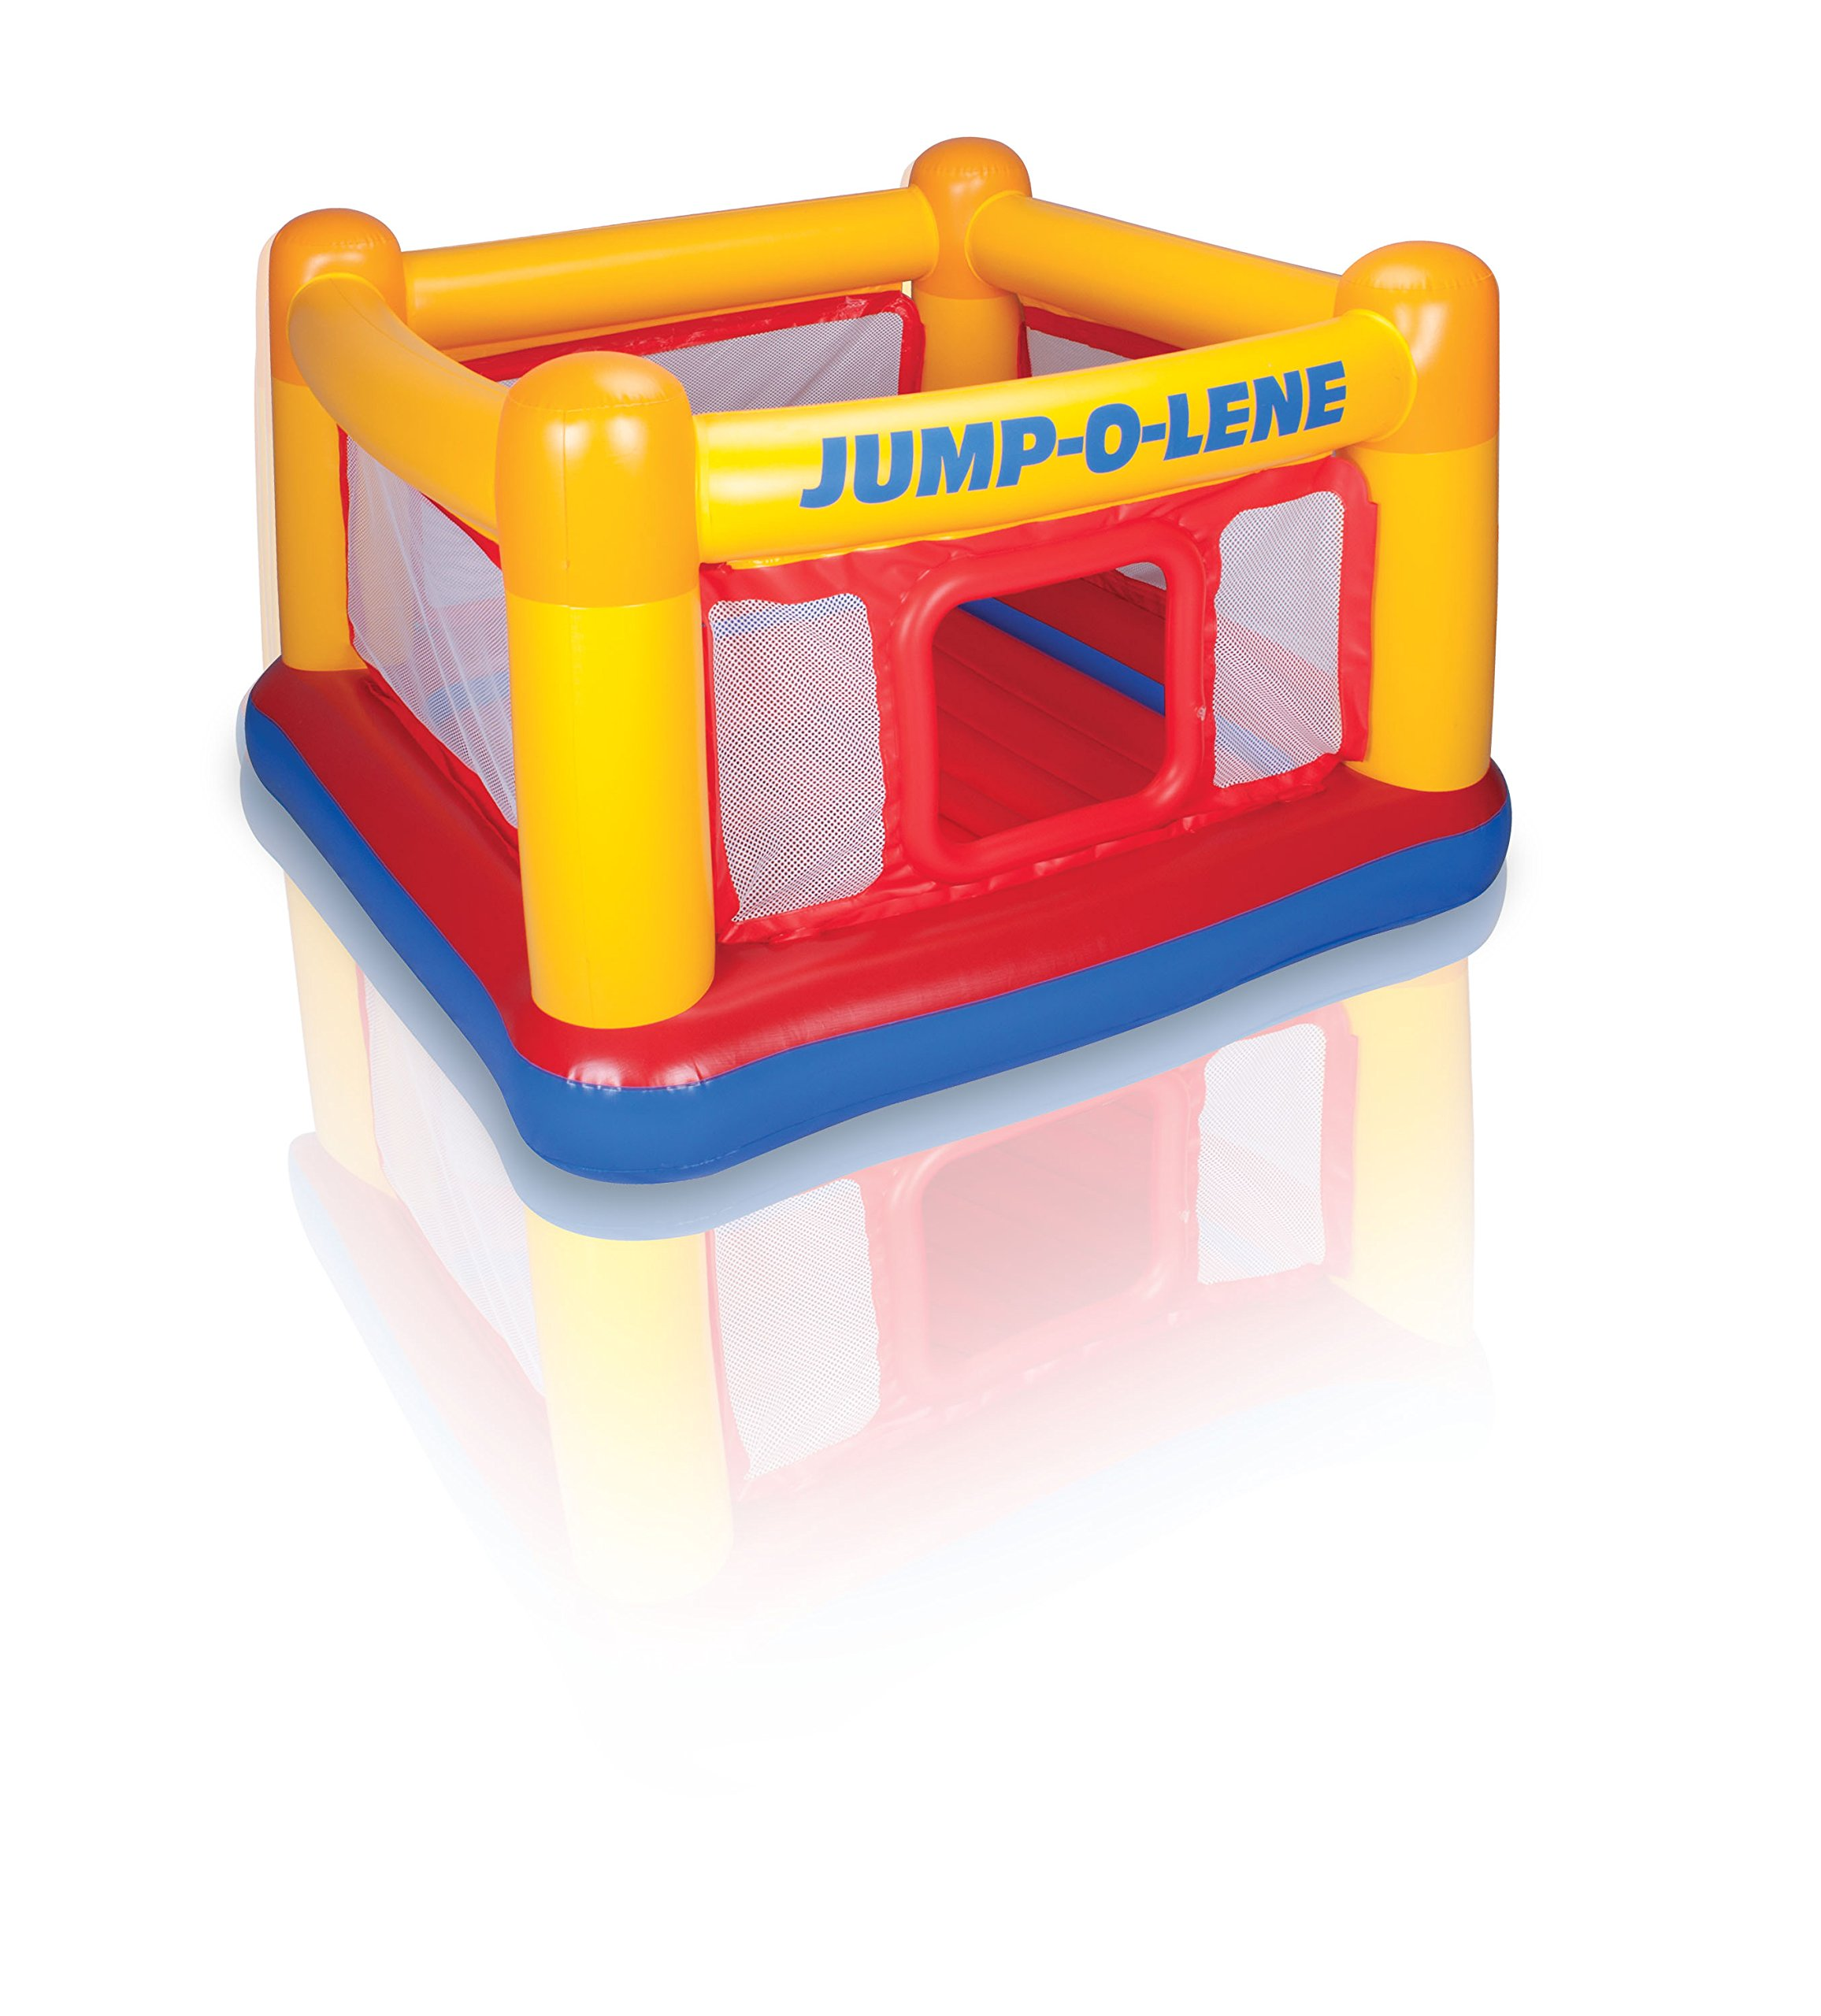 Intex Playhouse Jump-O-Lene Inflatable Bouncer, 68'' X 68'' X 44'', for Ages 3-6